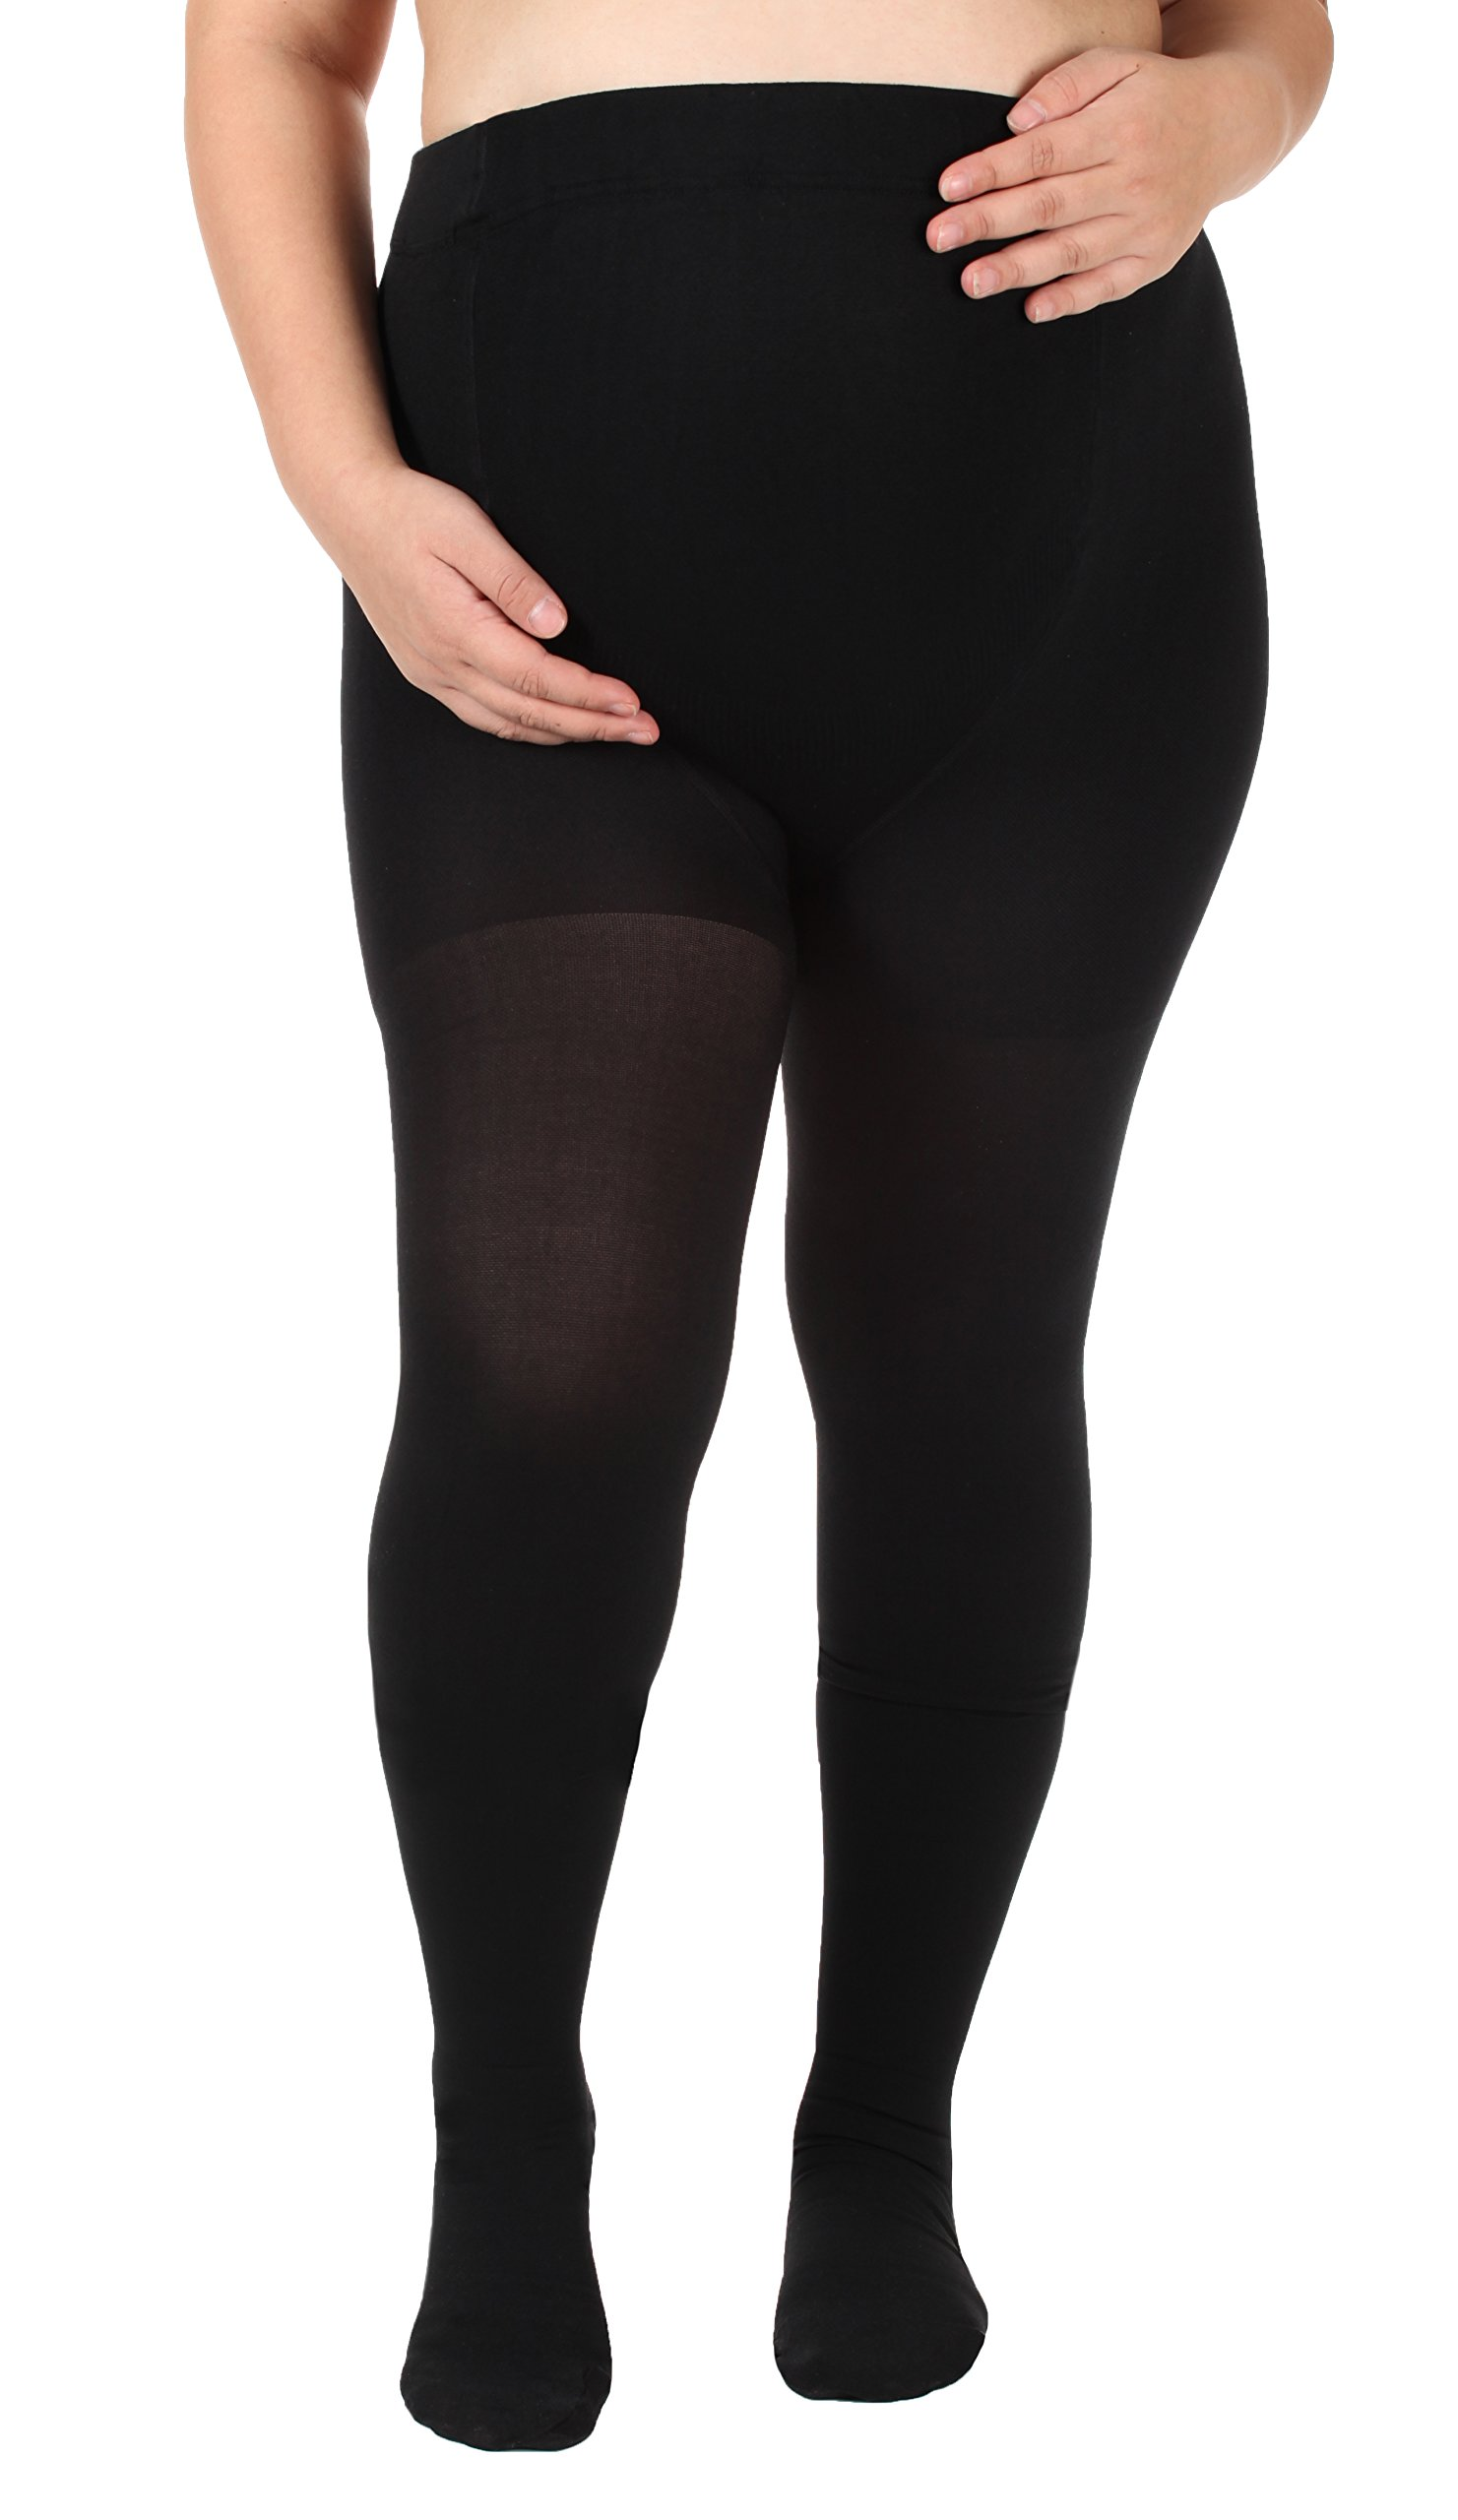 44b9d0352 Made in The USA - Opaque XL Maternity Compression Stockings - Absolute Support  Maternity Compression Leggings